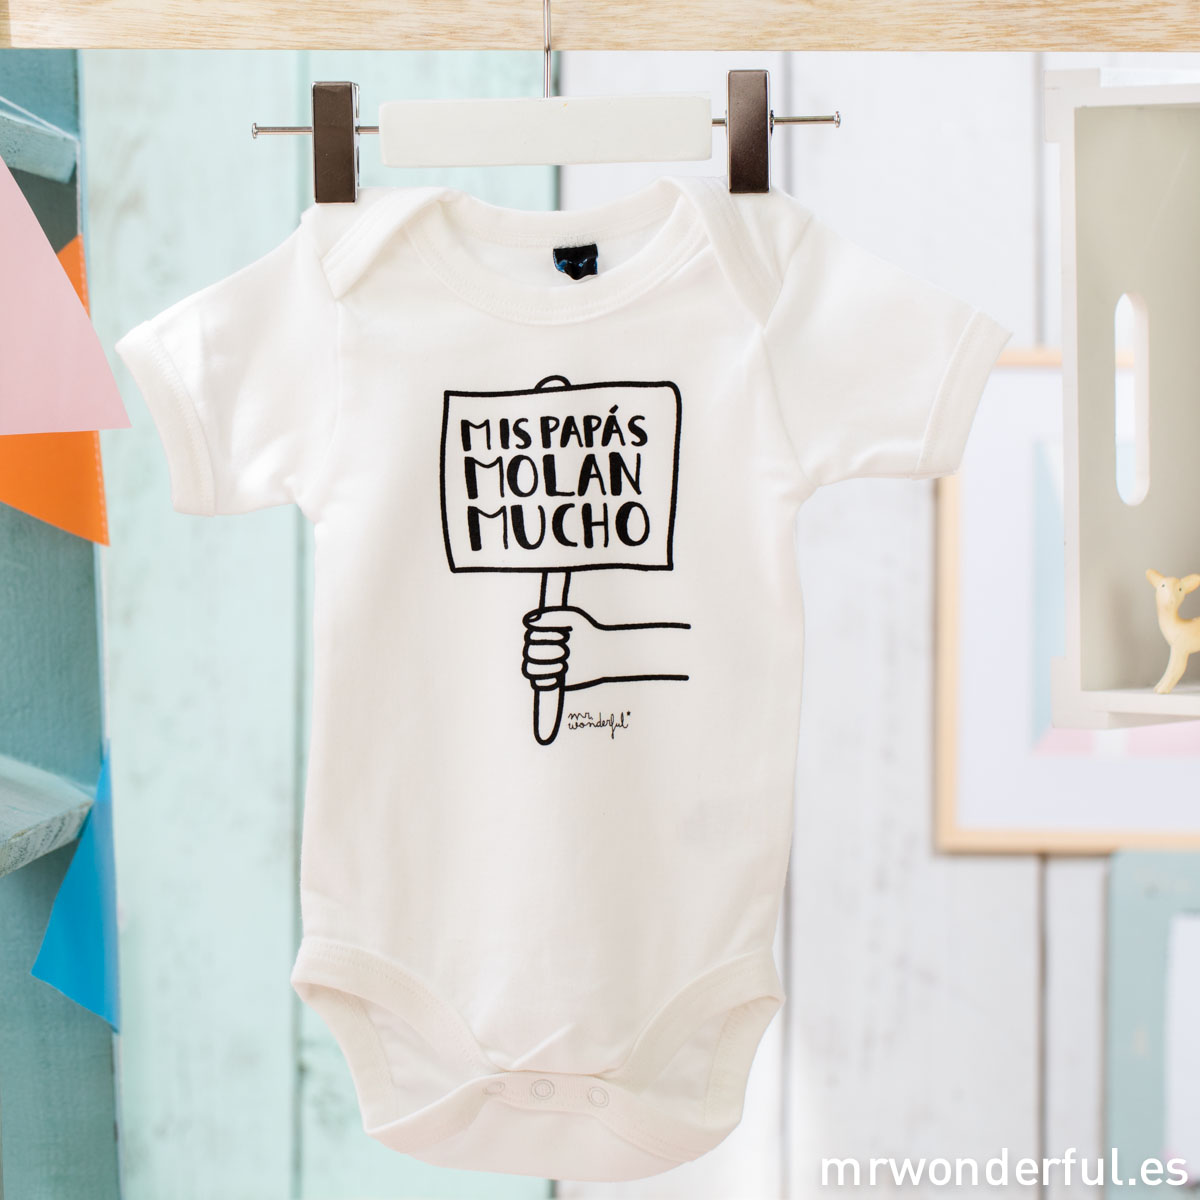 mrwonderful_BODY_PAPAS_body-bebe_mis-papas-molan-mucho-3